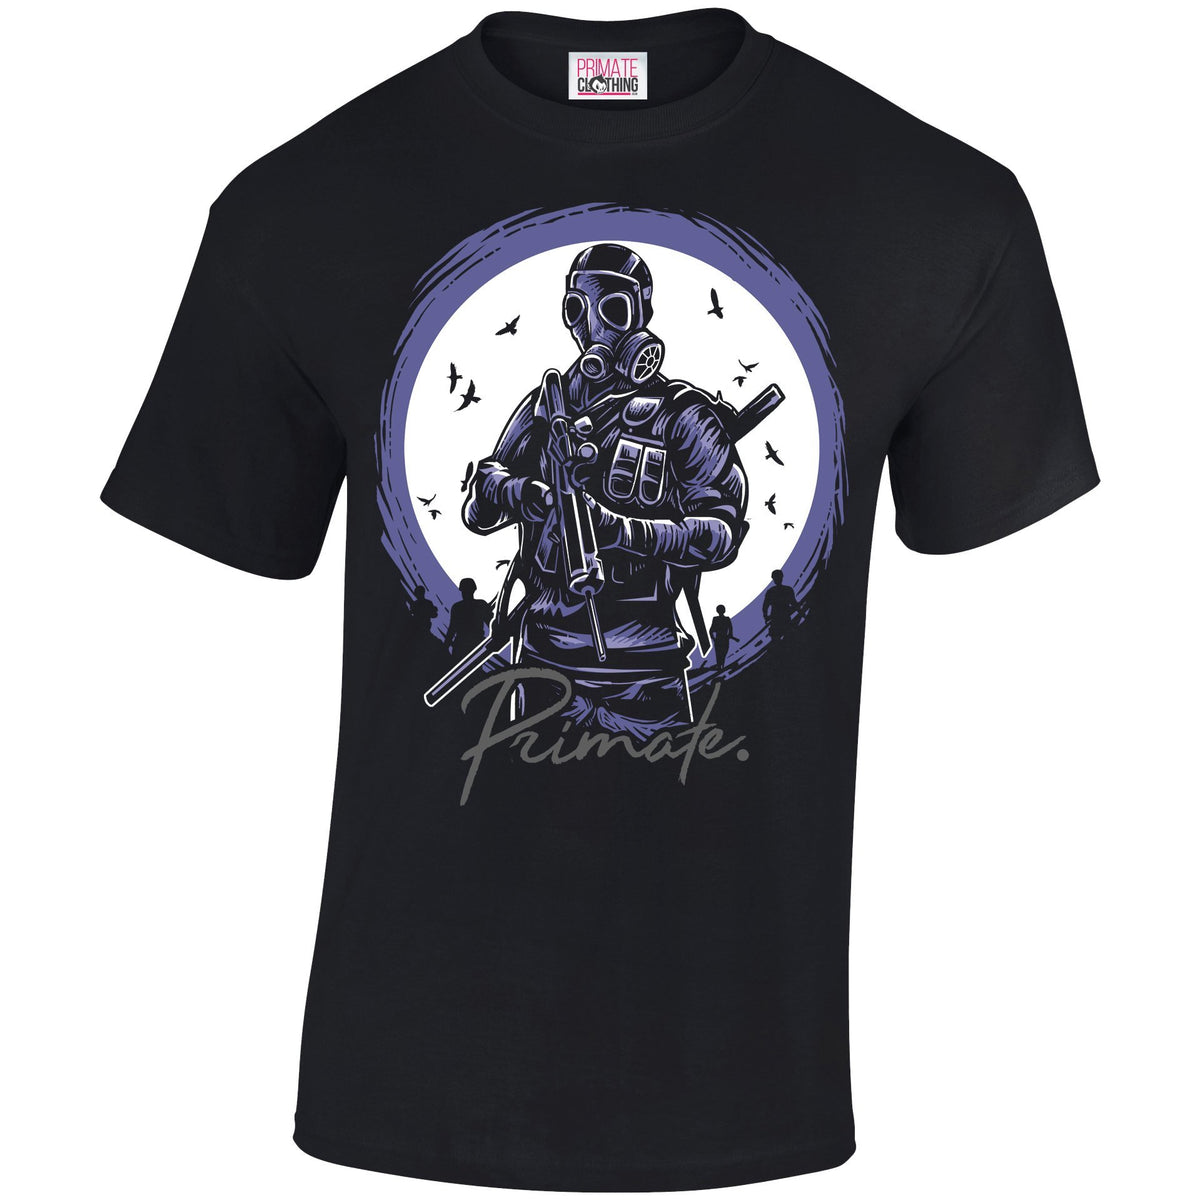 Gas Mask Soldier - T-Shirt Primate. Fashion Unisex: Small